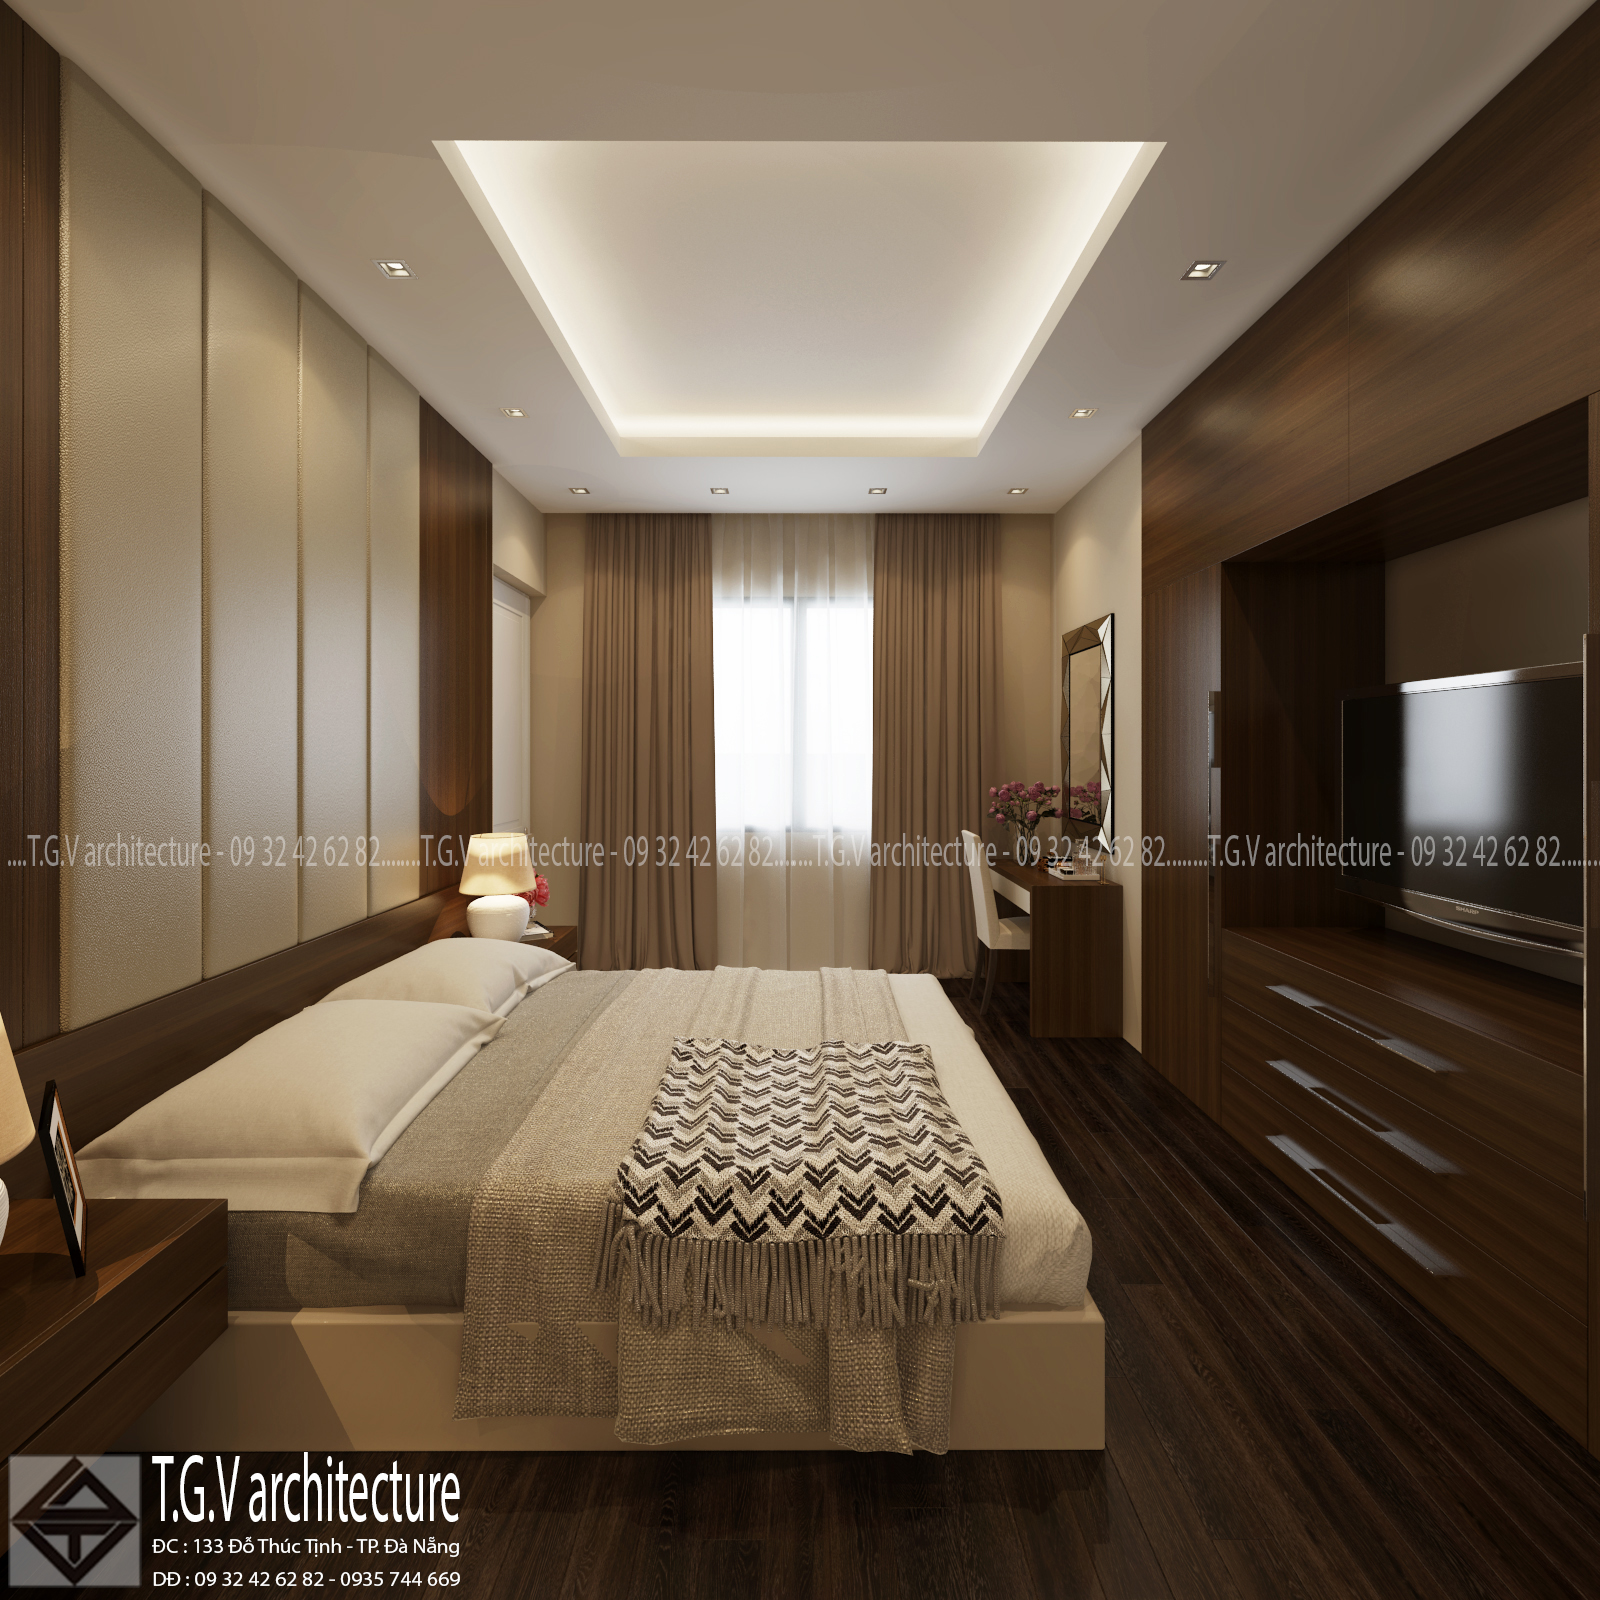 Bedroom_03_View_03